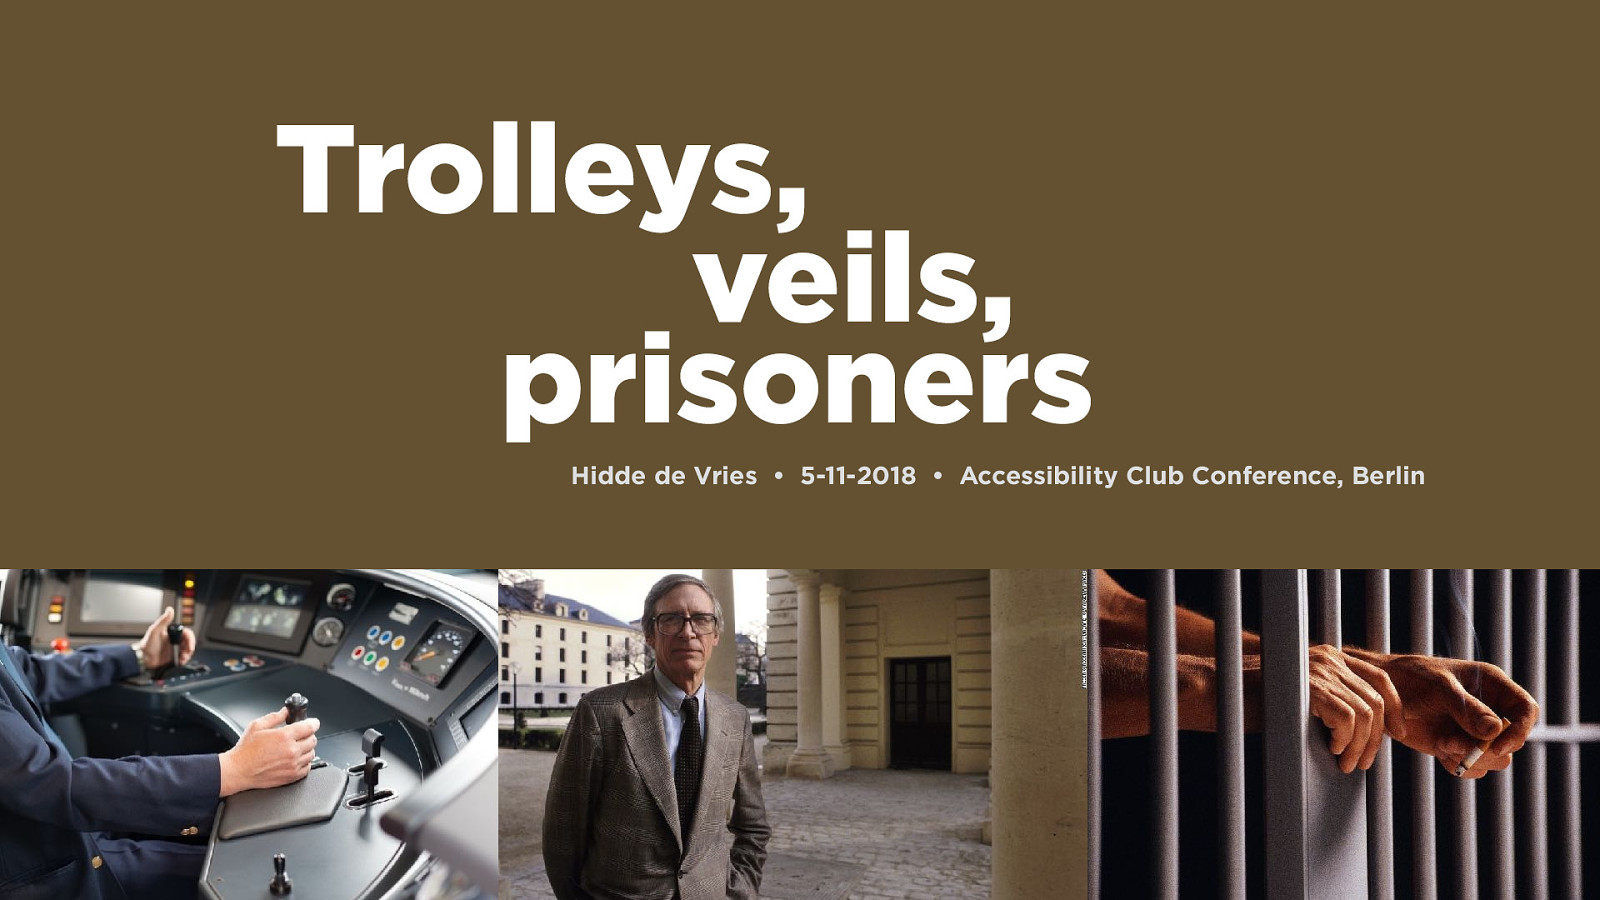 Trolleys, veils and prisoners: the case for accessibility from philosophical ethics by Hidde de Vries